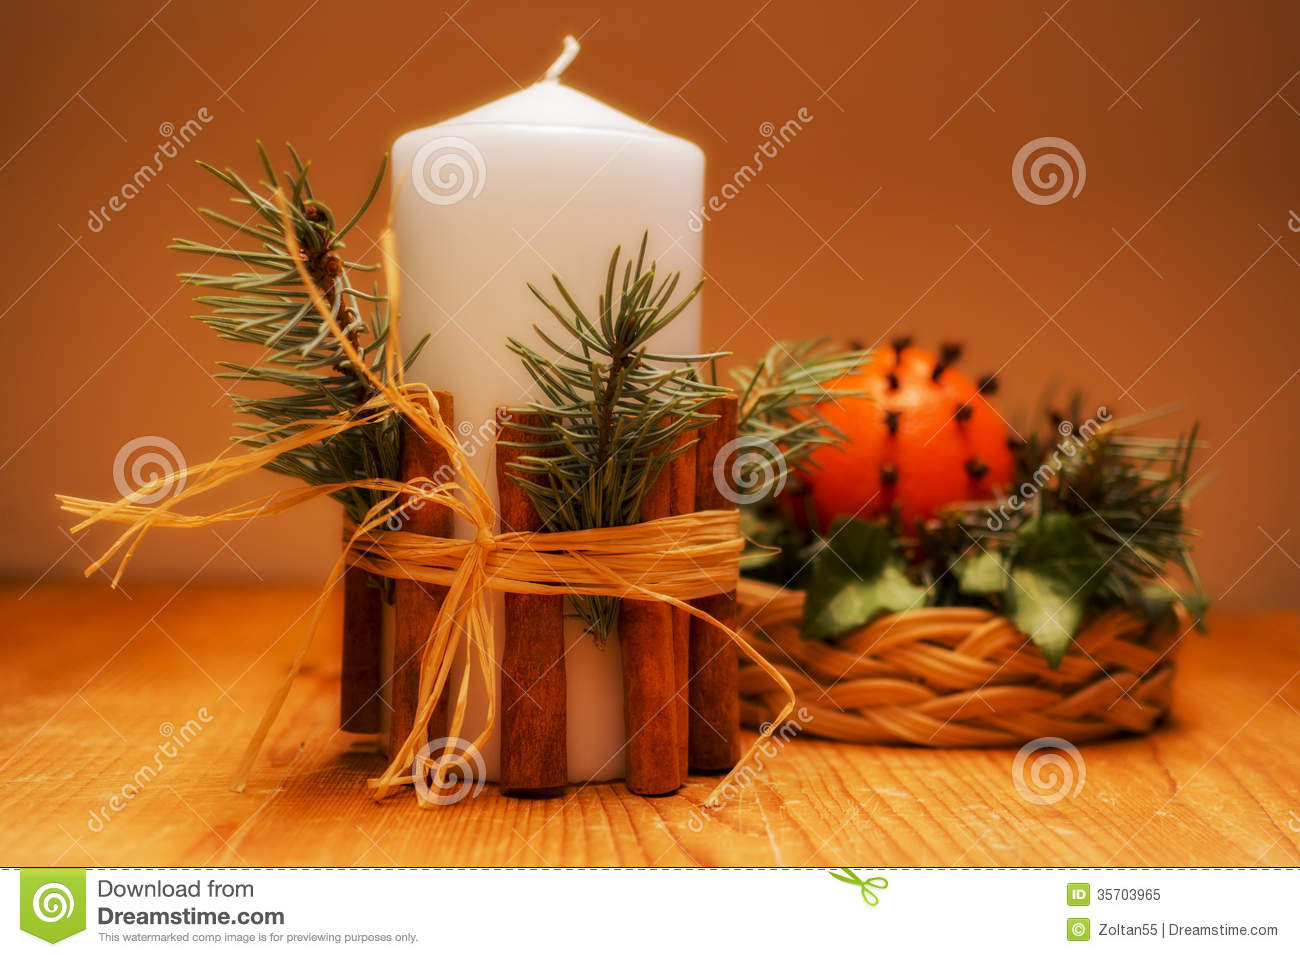 Search results for royalty free advent candle pic for Advent candle decoration